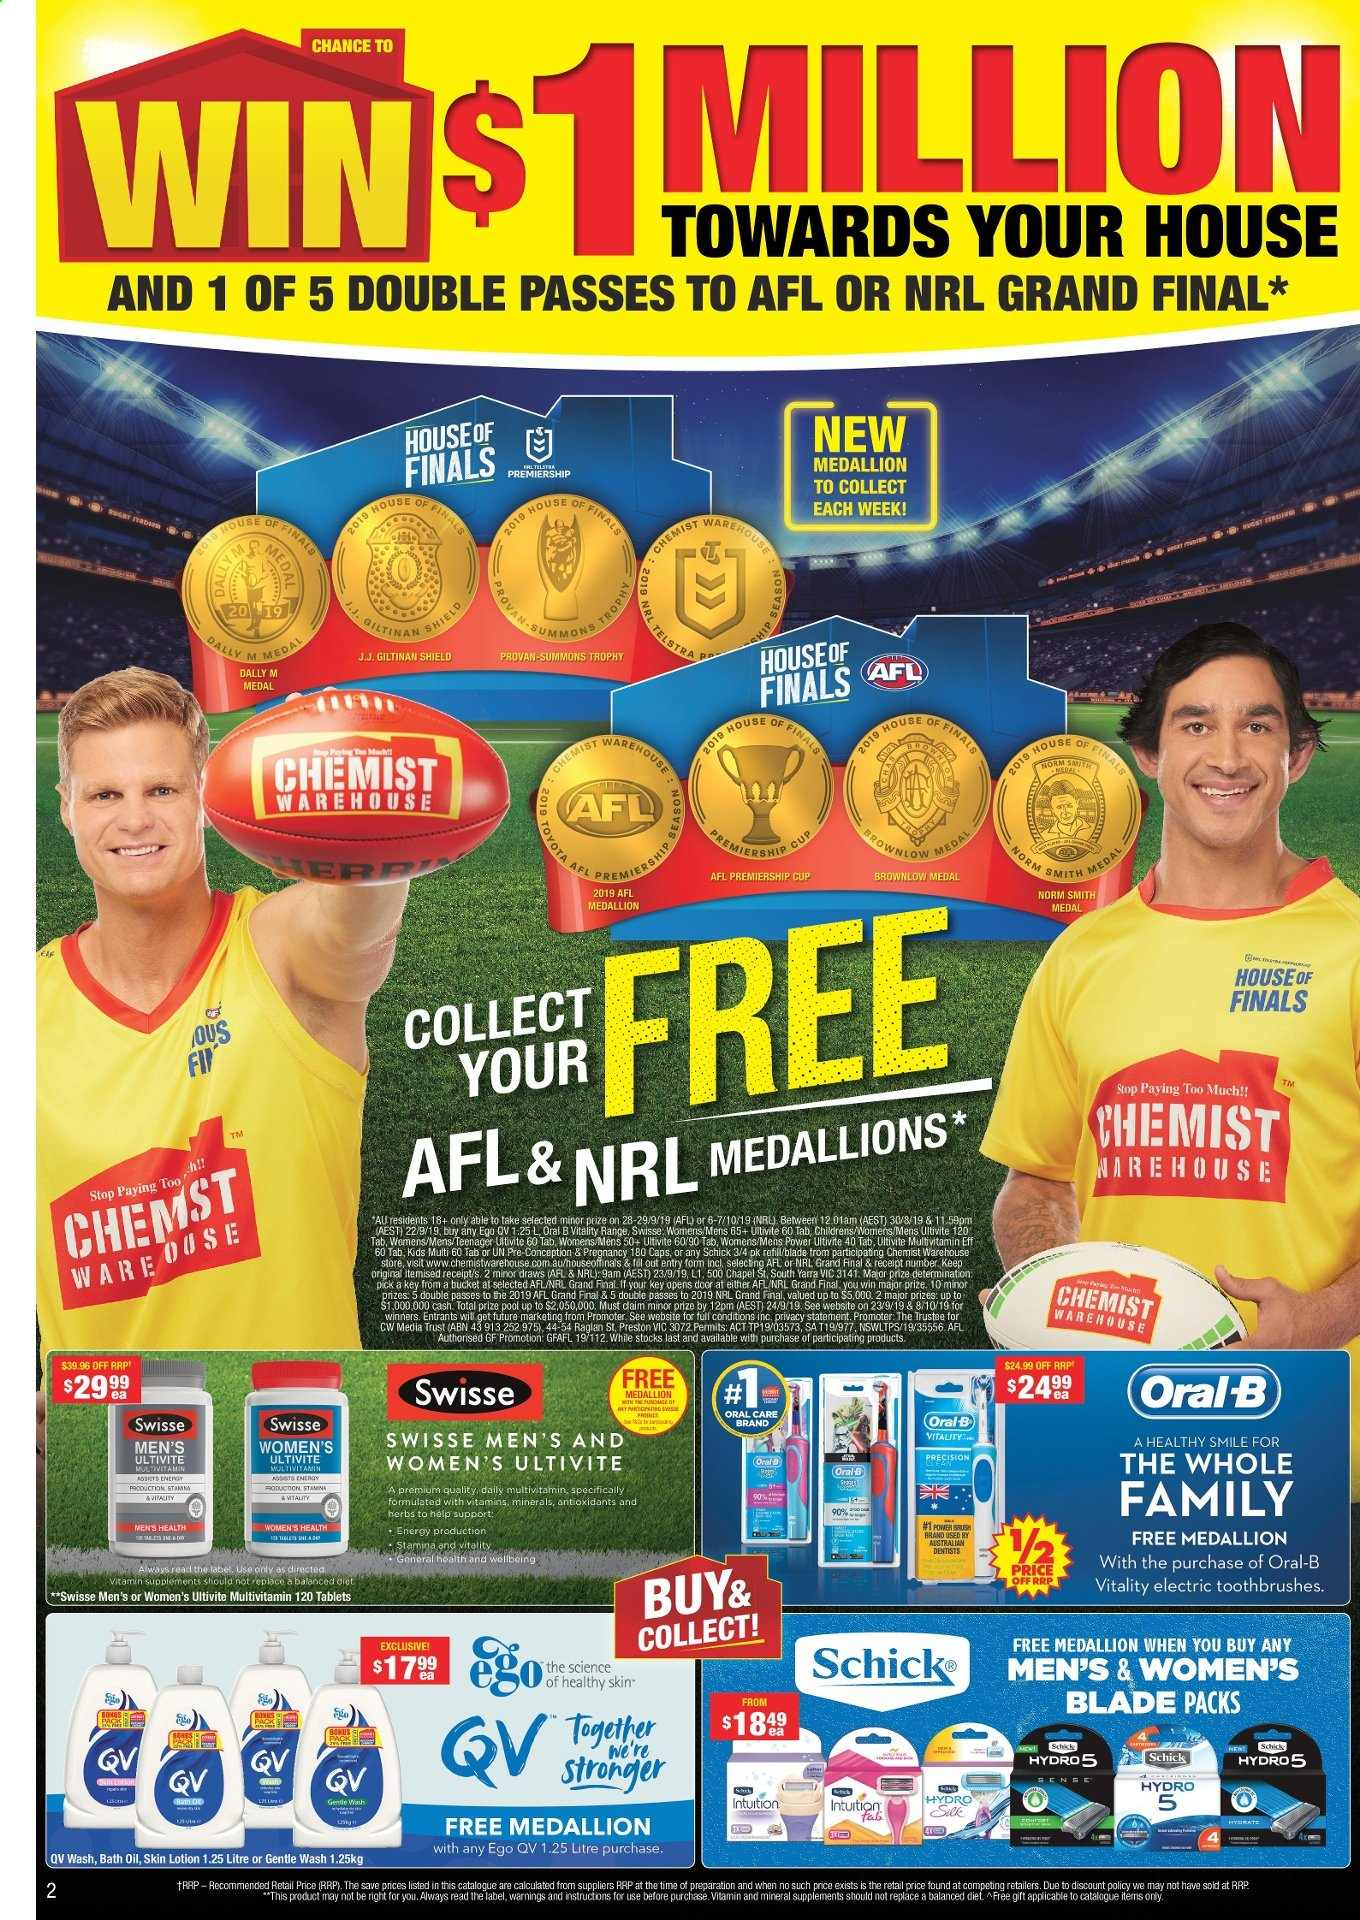 Chemist Warehouse catalogue and weekly specials 2 9 2019